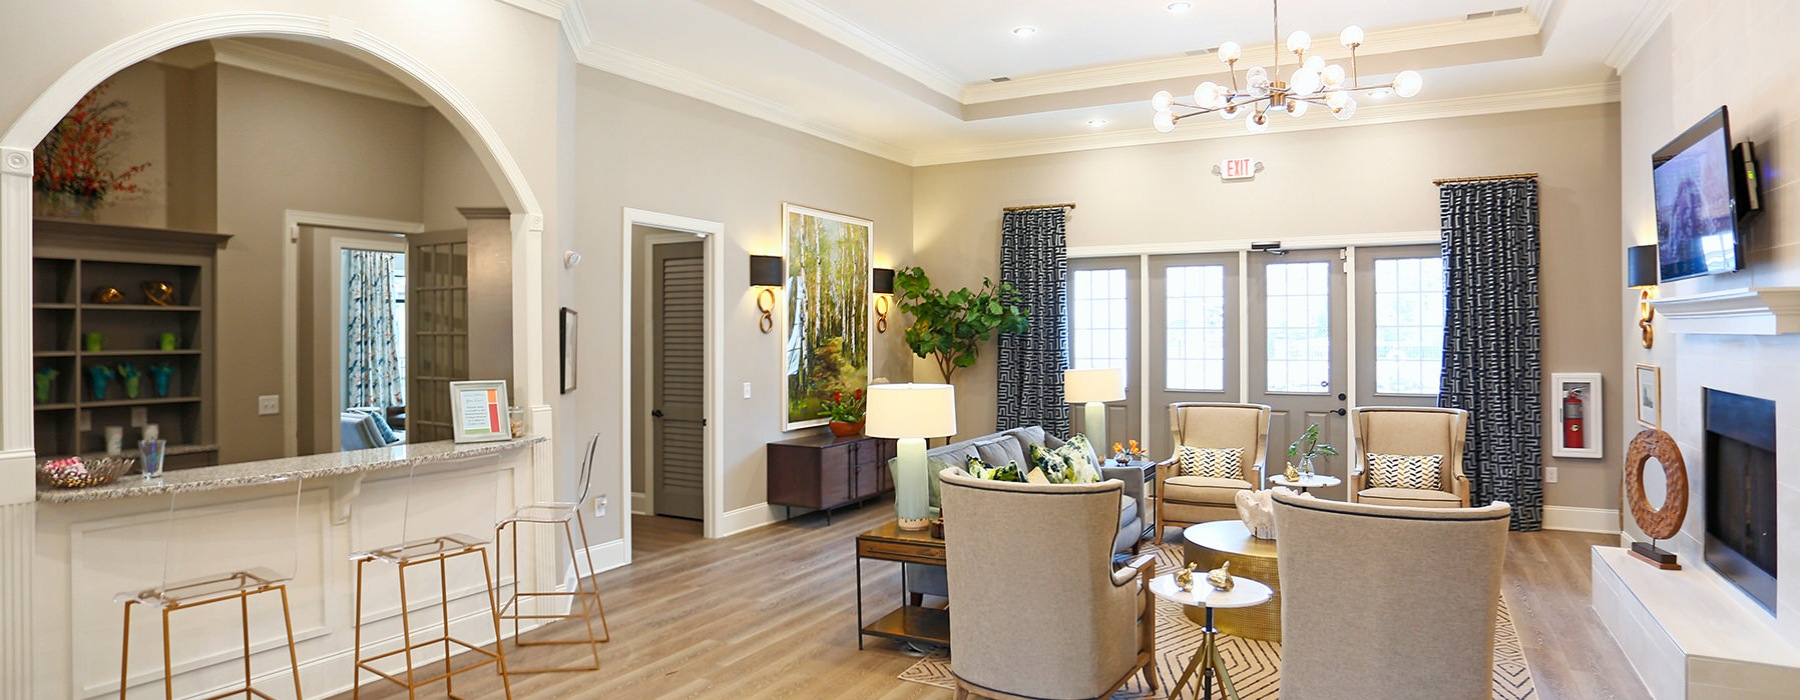 Well Lit Resident Lounge With Comfortable Seating & Wood Floors At Laurel View Apartments in Concord, NC